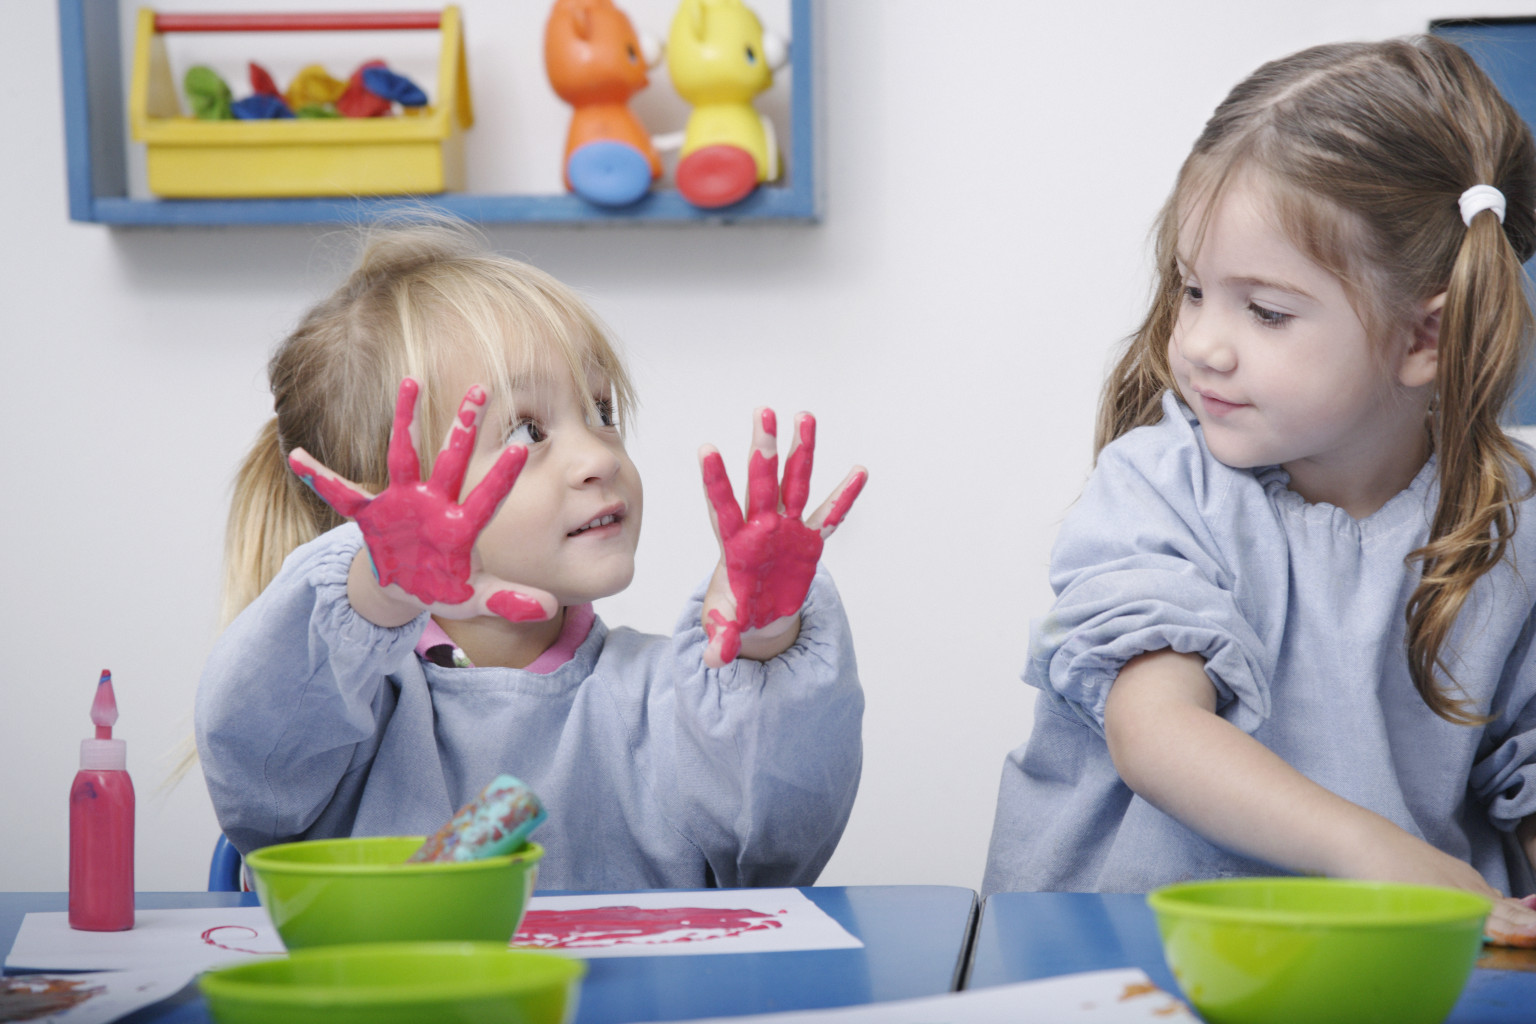 Girls finger-painting in classroom